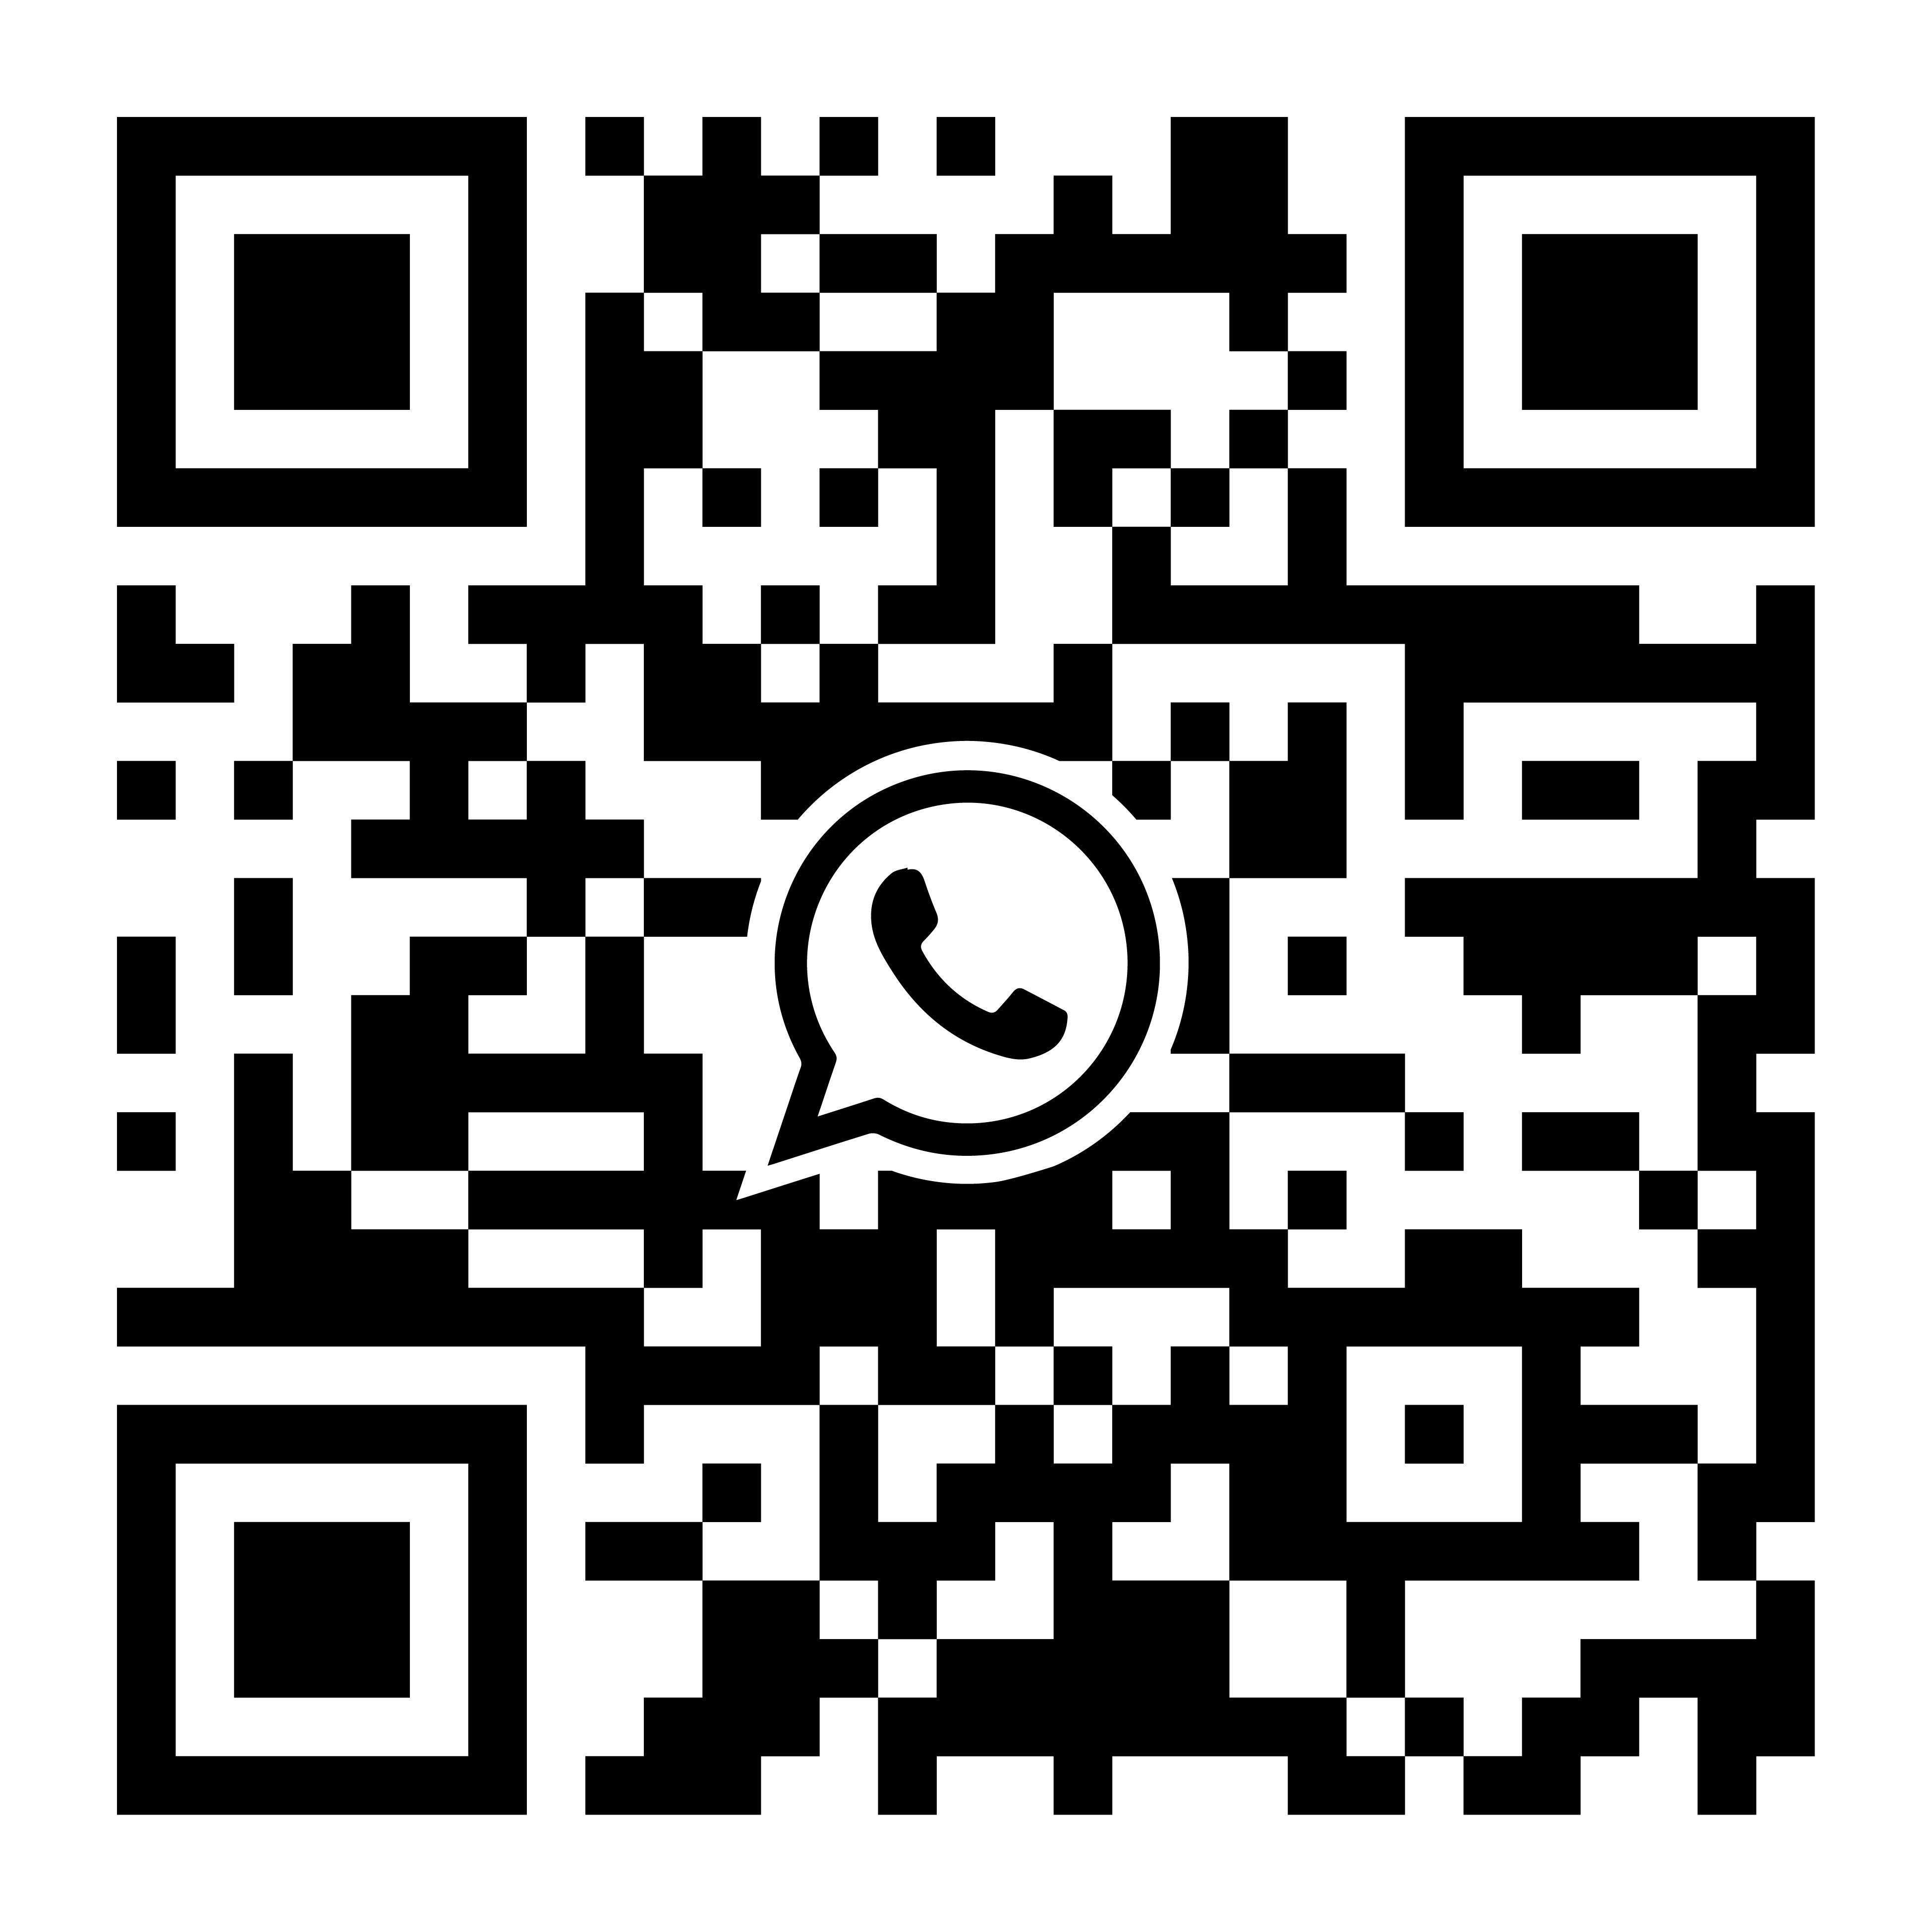 Whatsapp Business QR Code